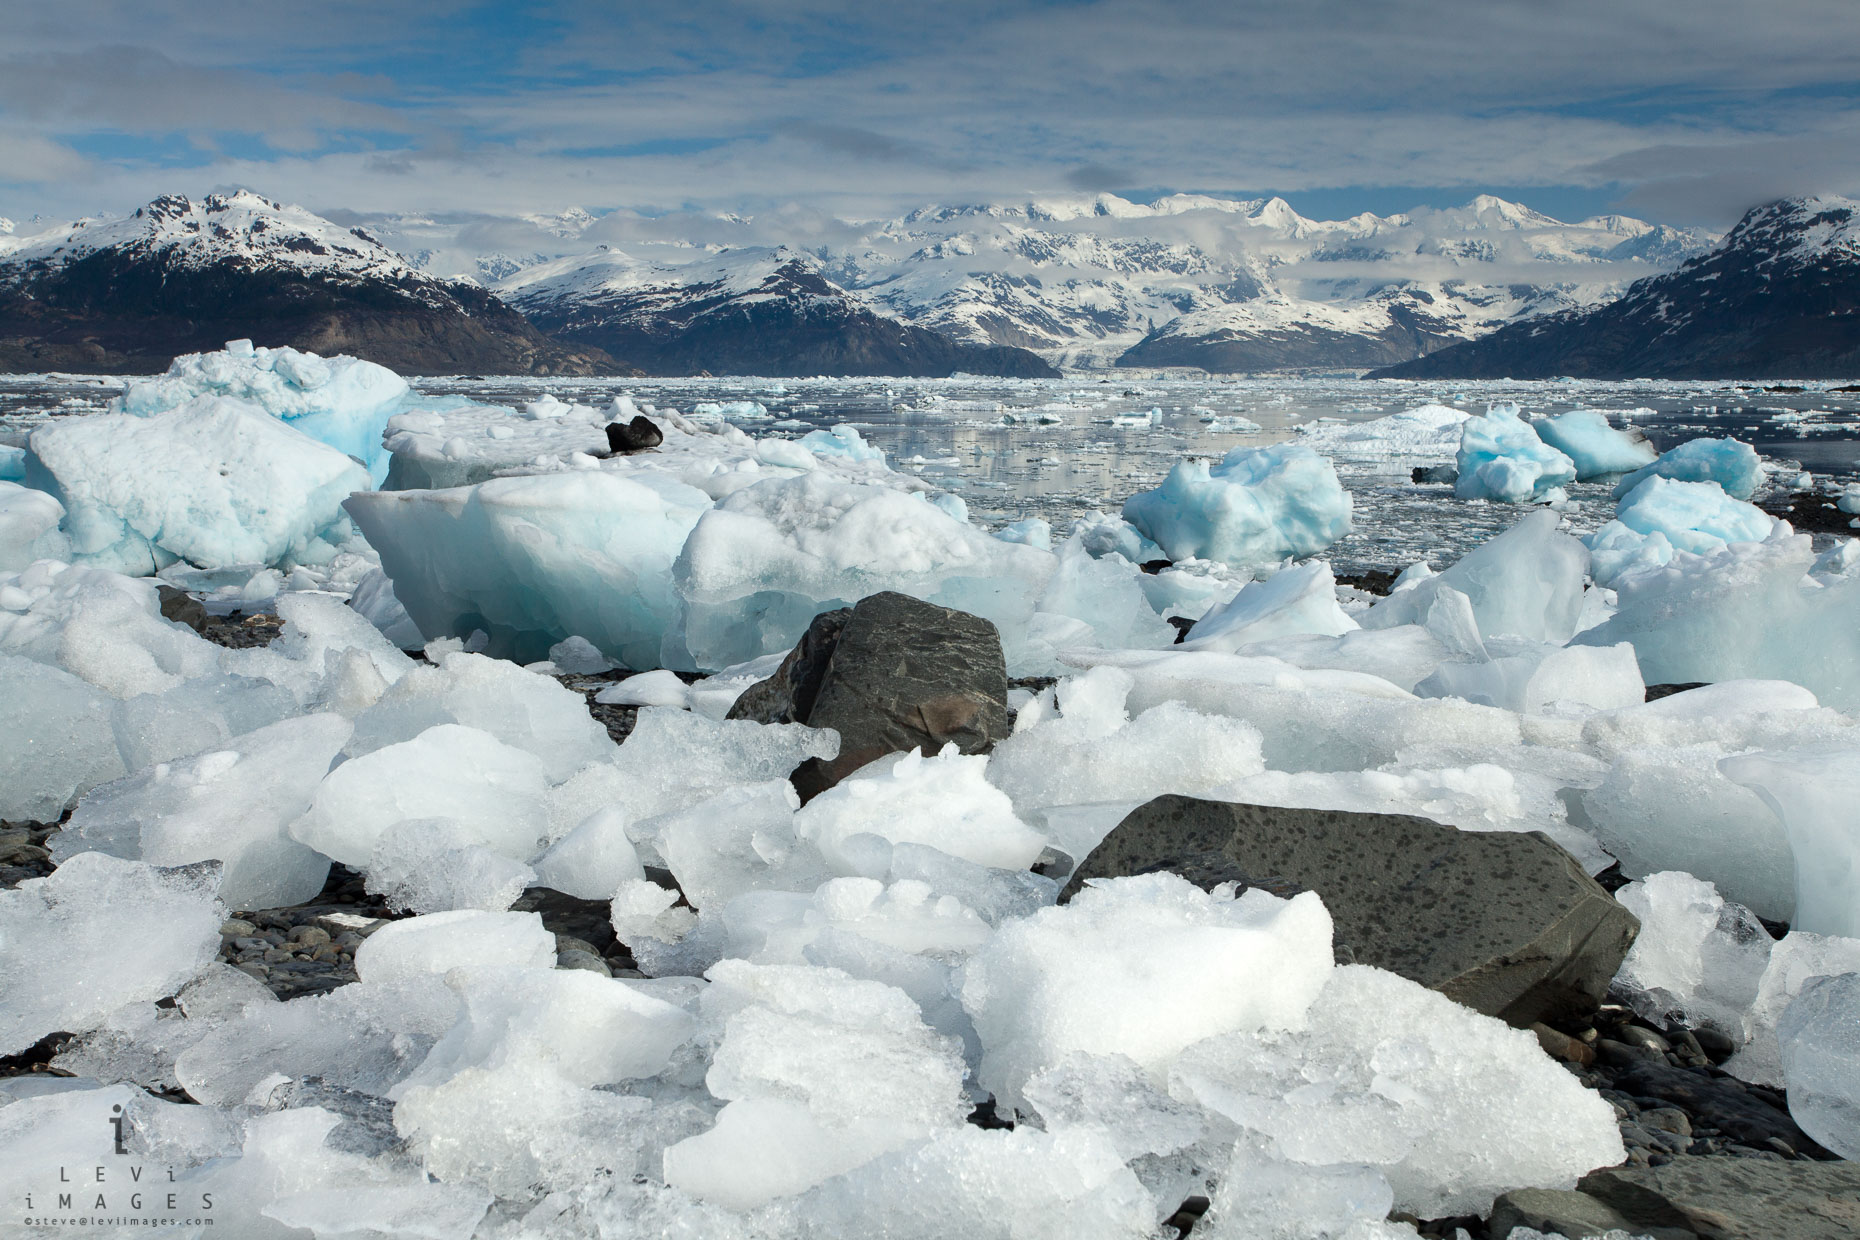 Ice fragments deposited at high tide, Columbia Glacier. Prince William Sound, Alaska